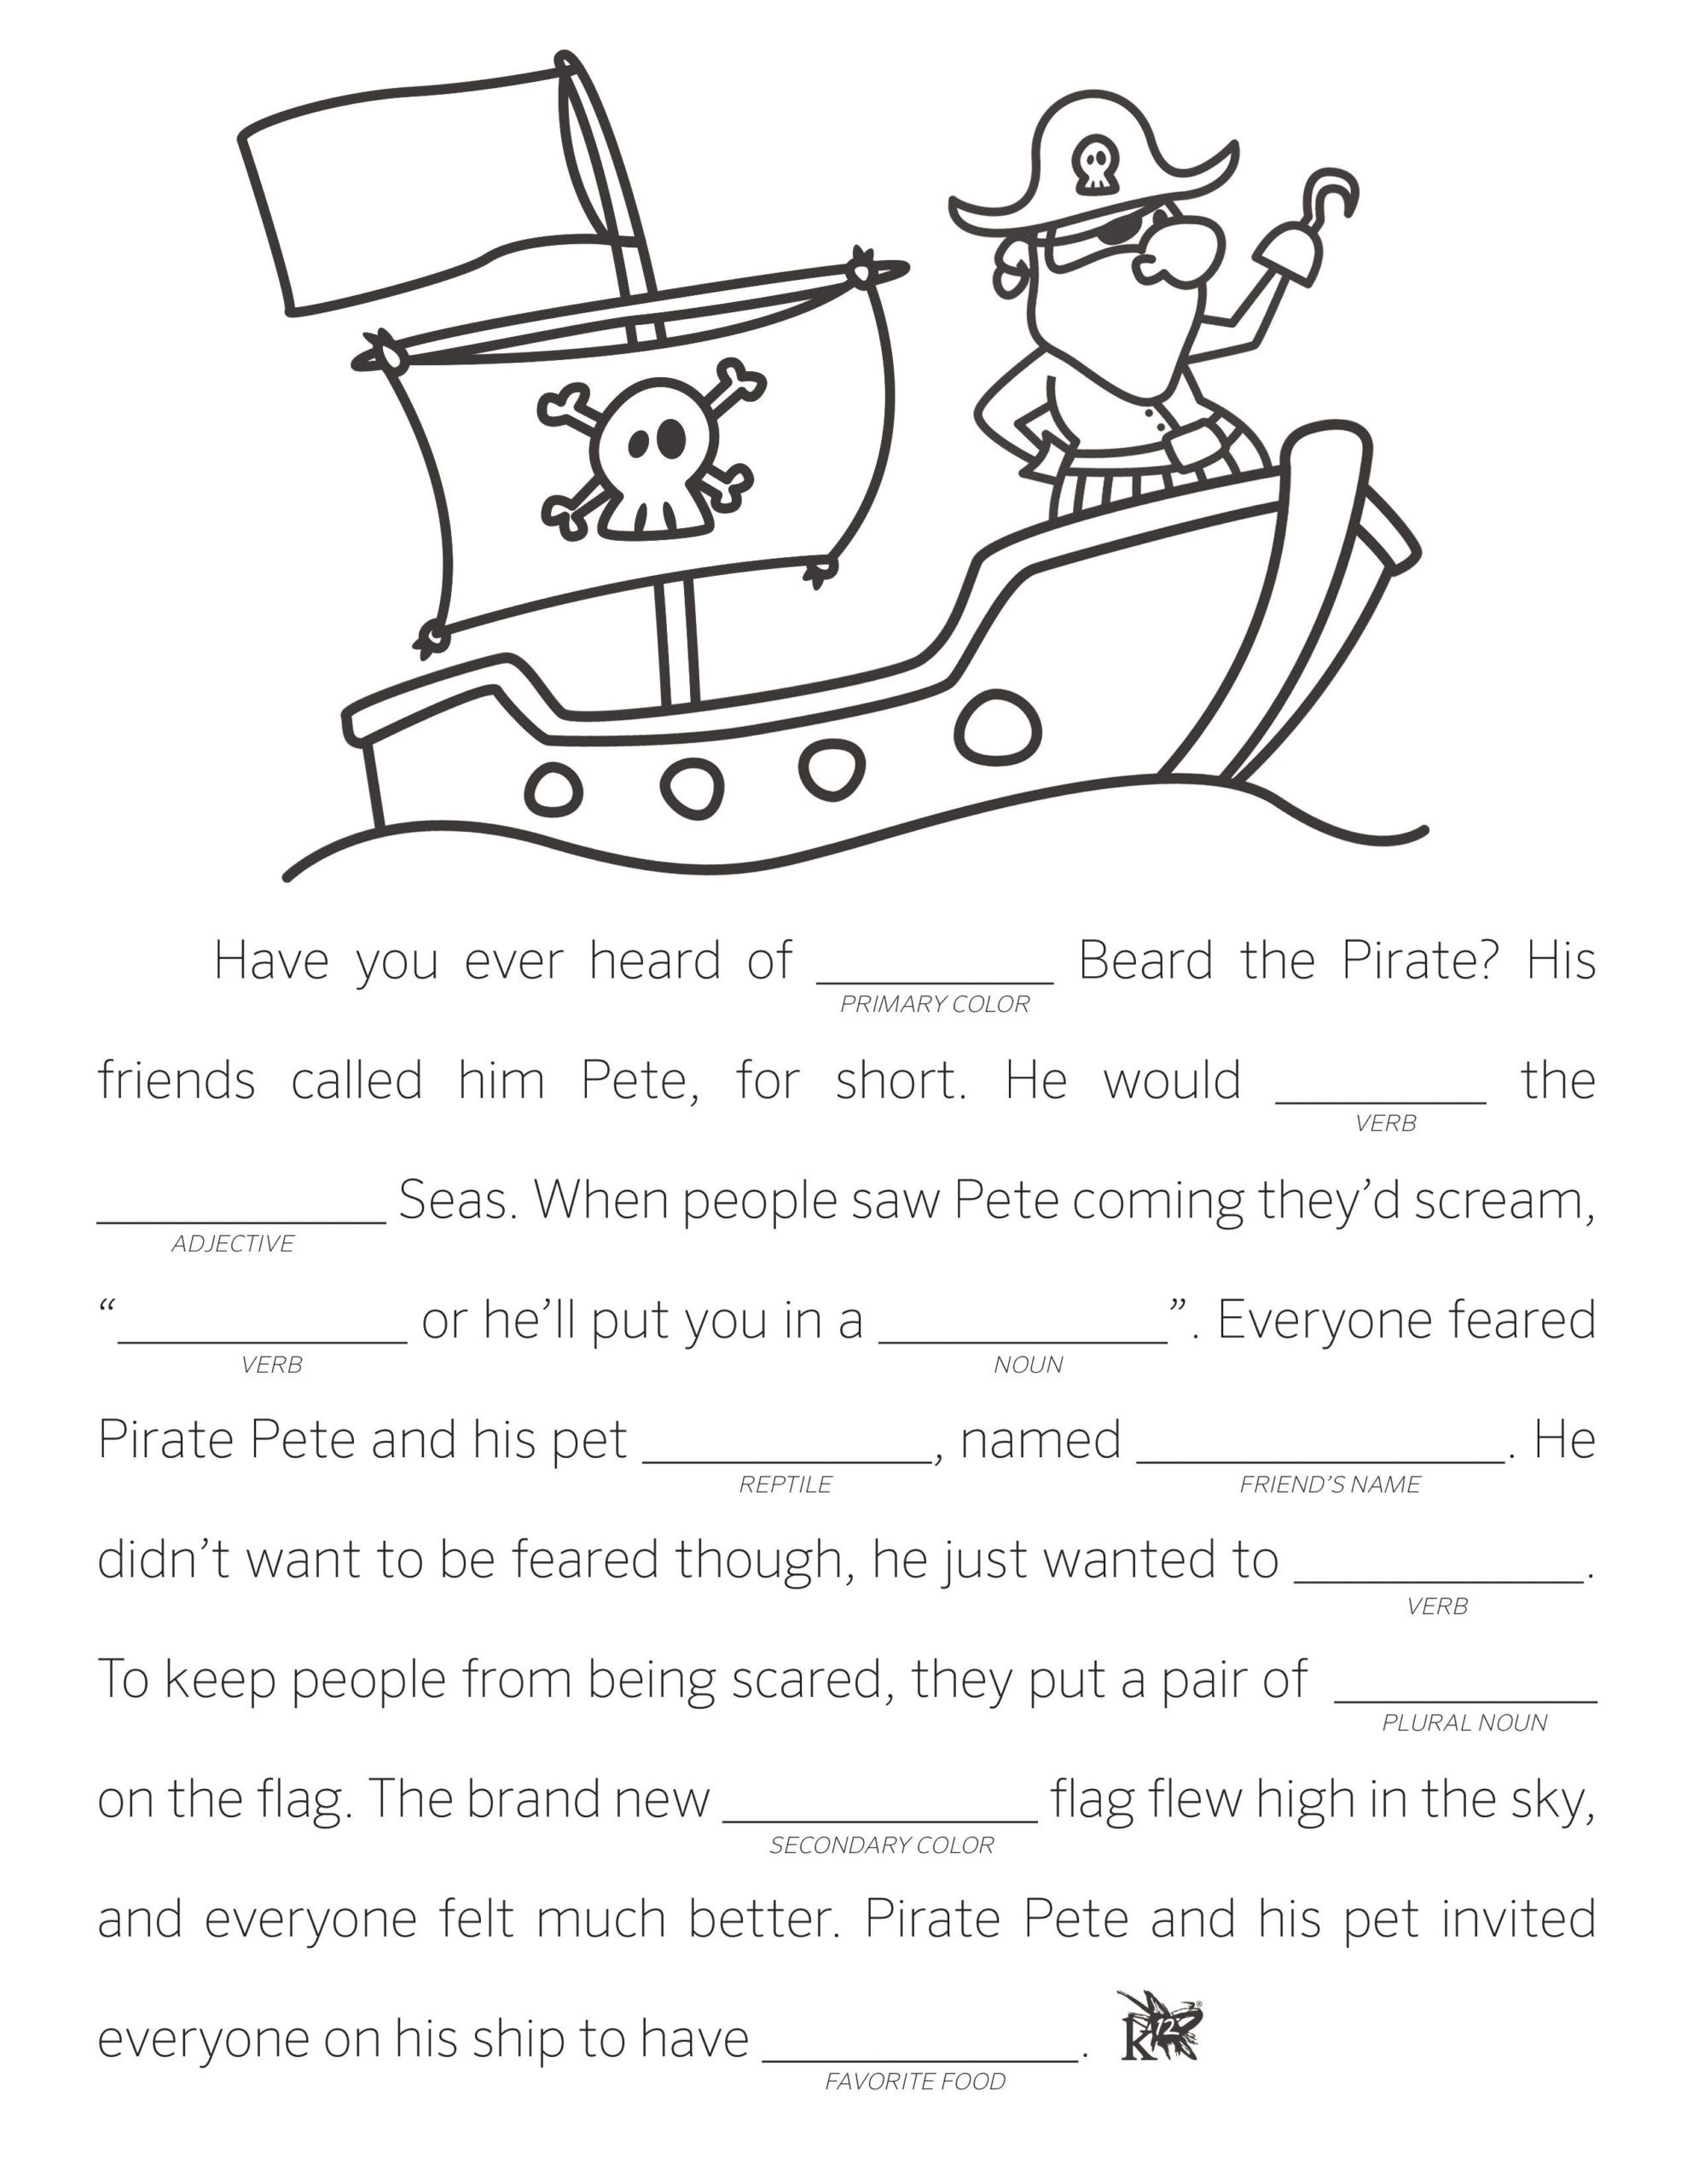 Character Traits Worksheet 2nd Grade Fill In the Blank Funny Worksheets Printable Inferring